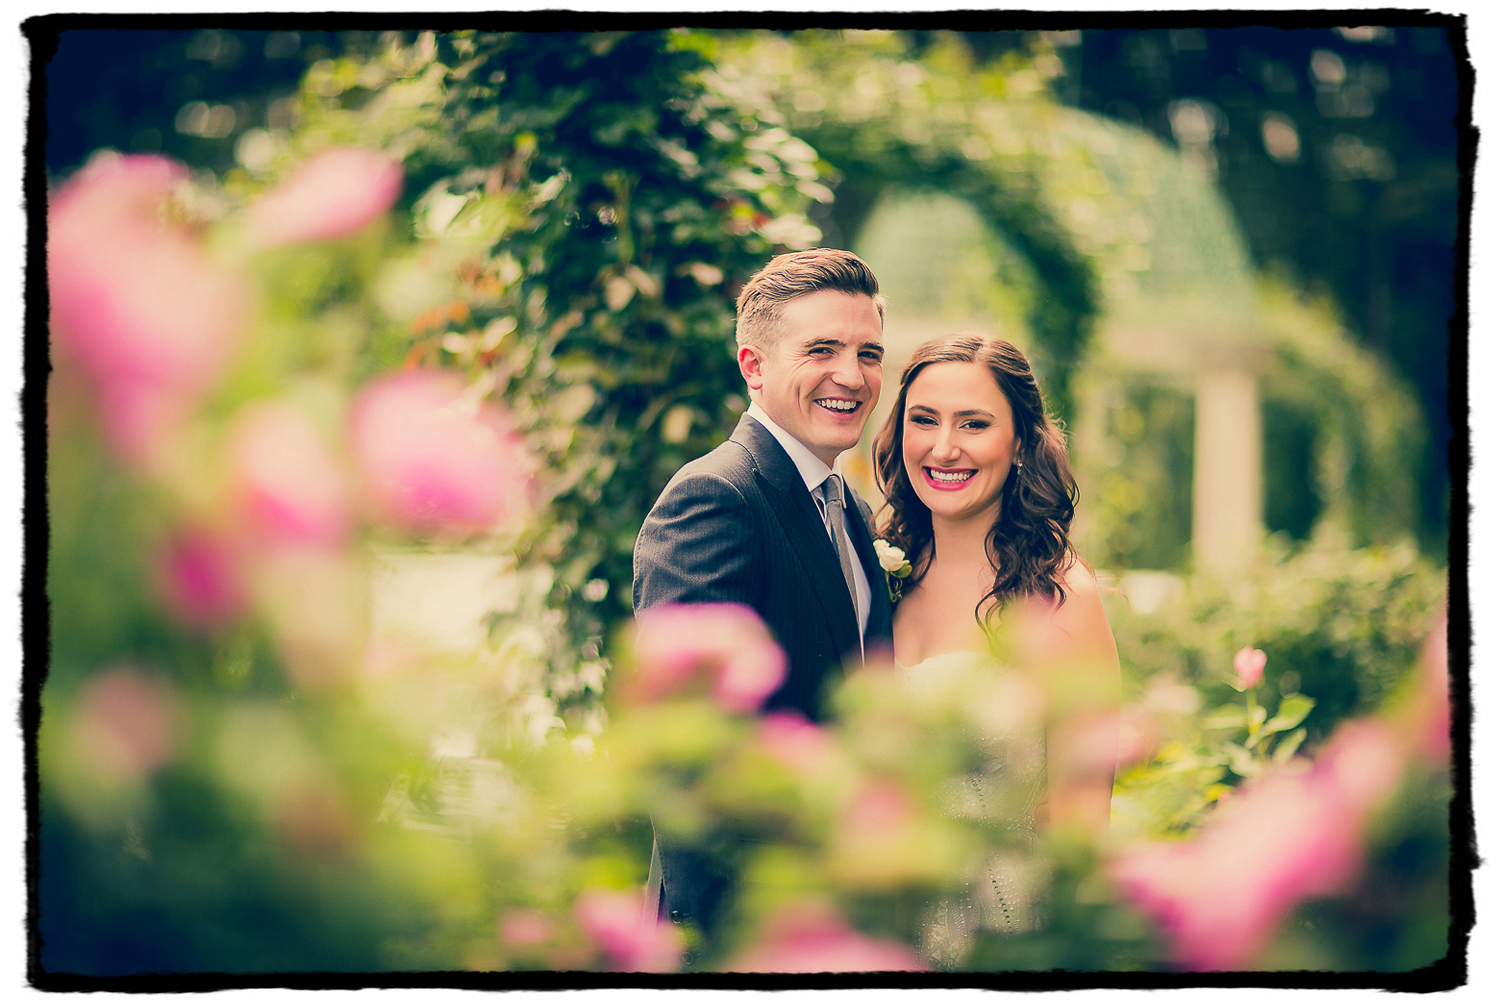 Michelle and Dan were radiant in the rose garden at their Lyndhurst Mansion wedding in Westchester NY.